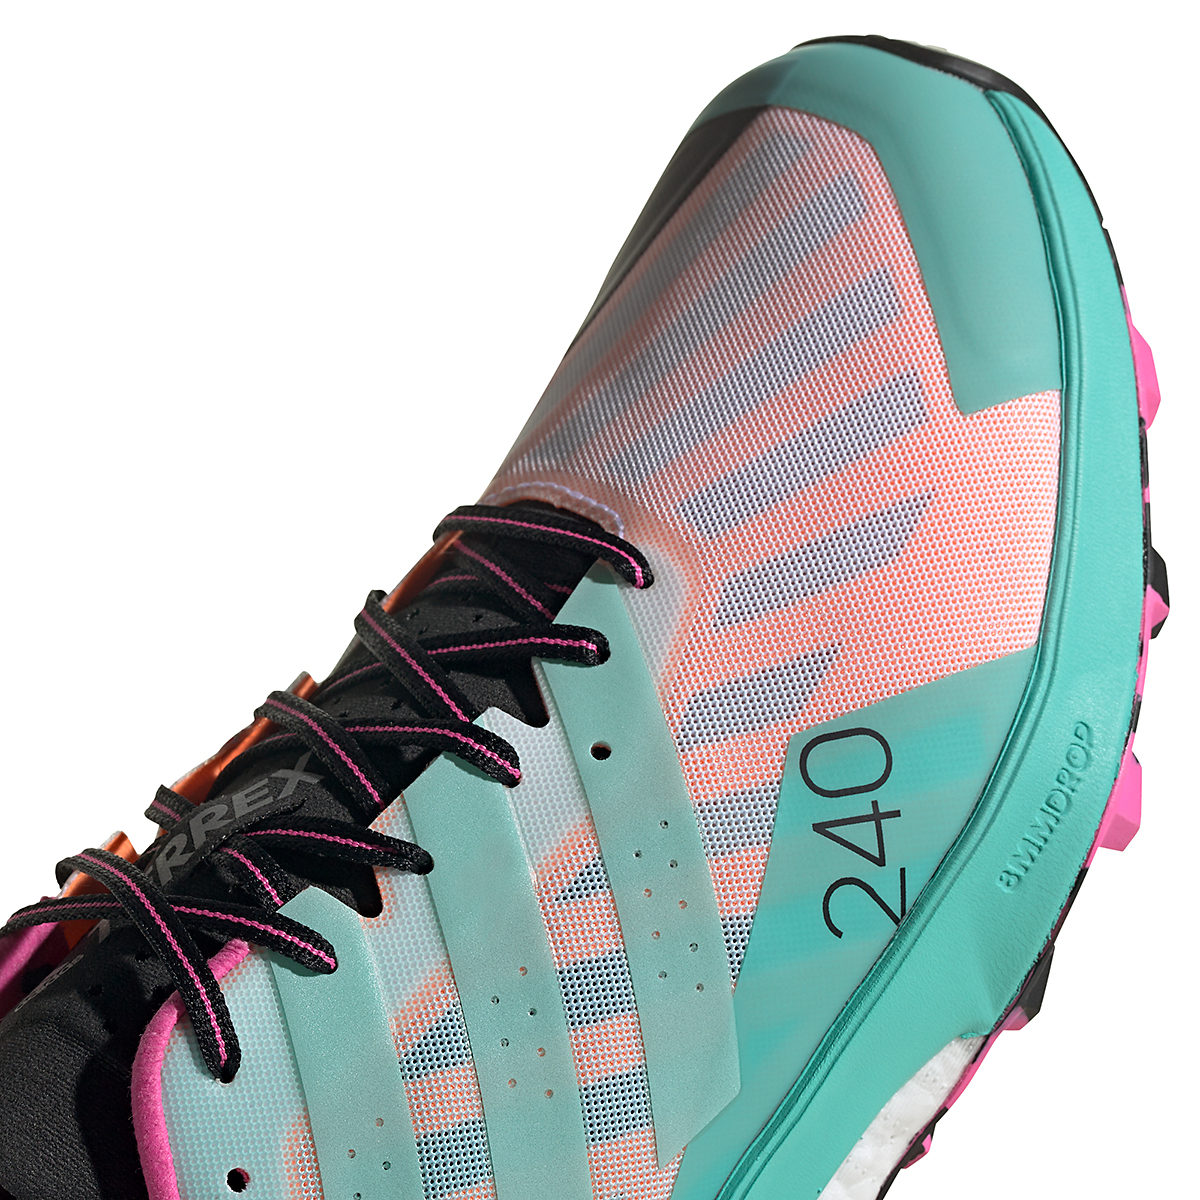 Men's Adidas Terrex Speed Ultra Trail Running Shoe - Color: White/Clear Mint/Screaming Pink - Size: 6.5 - Width: Regular, White/Clear Mint/Screaming Pink, large, image 4